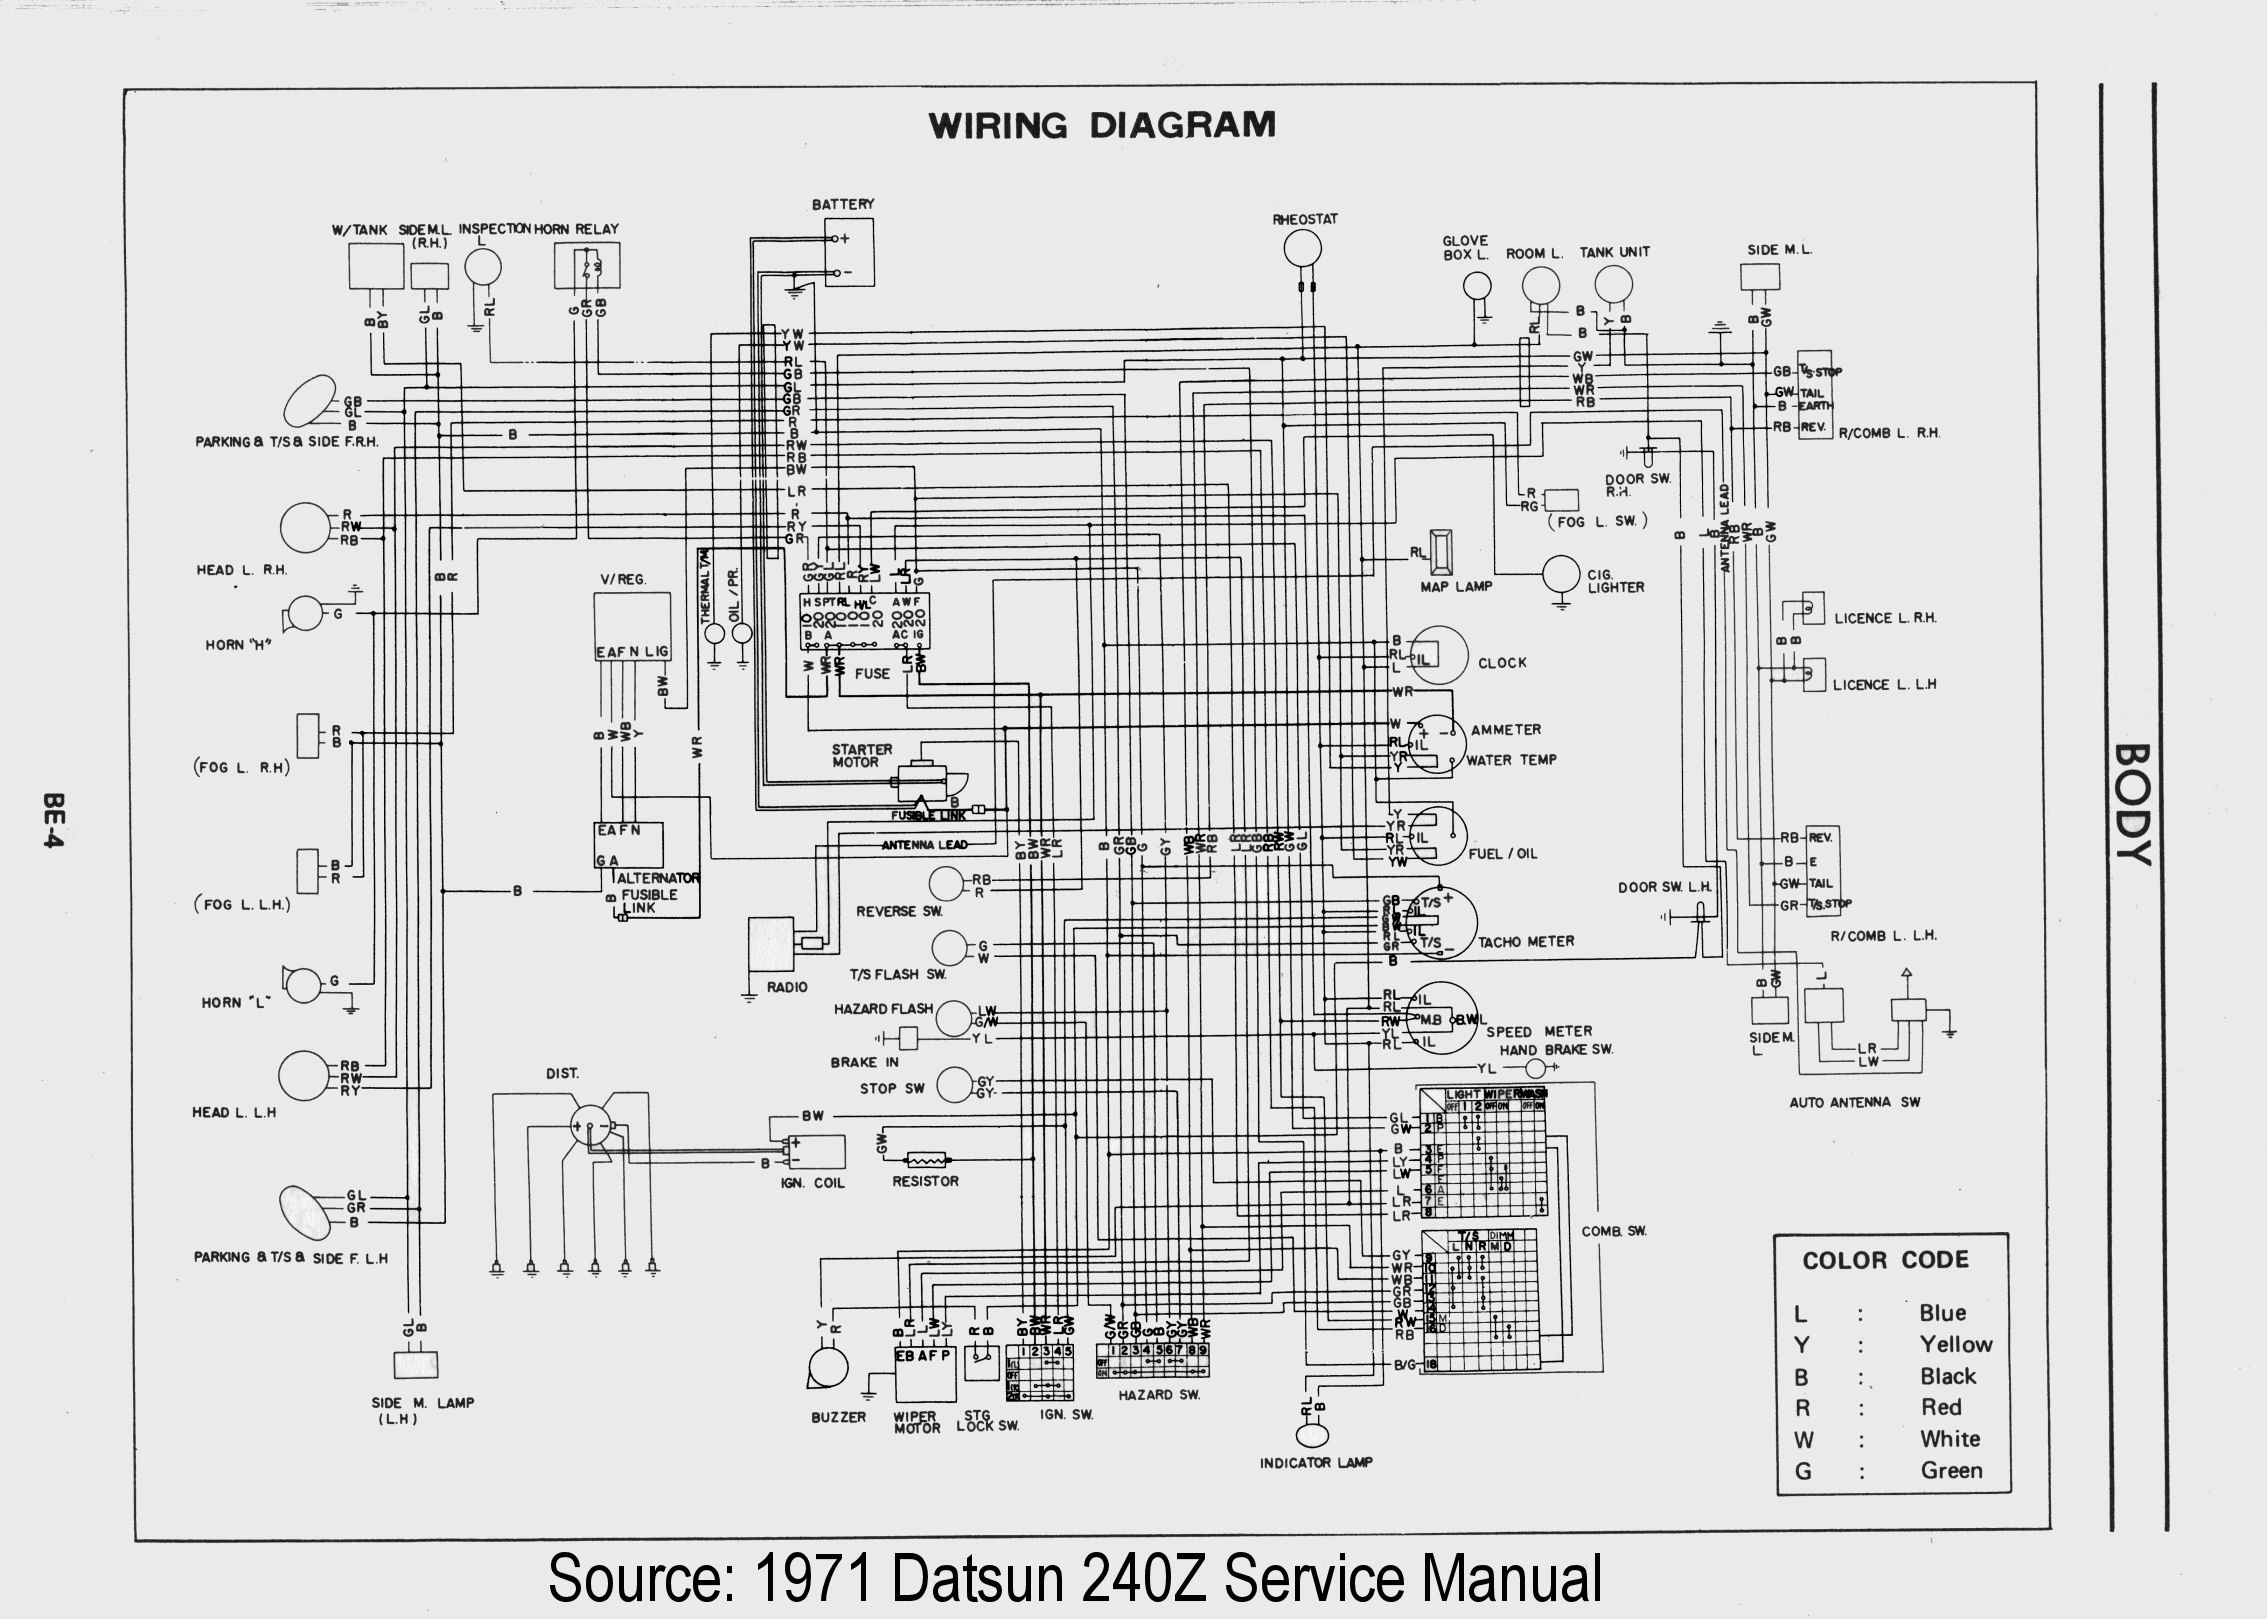 Wiring Diagram HiRes 2 240z wiring diagram 73 240z wiring diagram \u2022 wiring diagrams j In a 98 Dodge Dakota Wiring Harness at mifinder.co